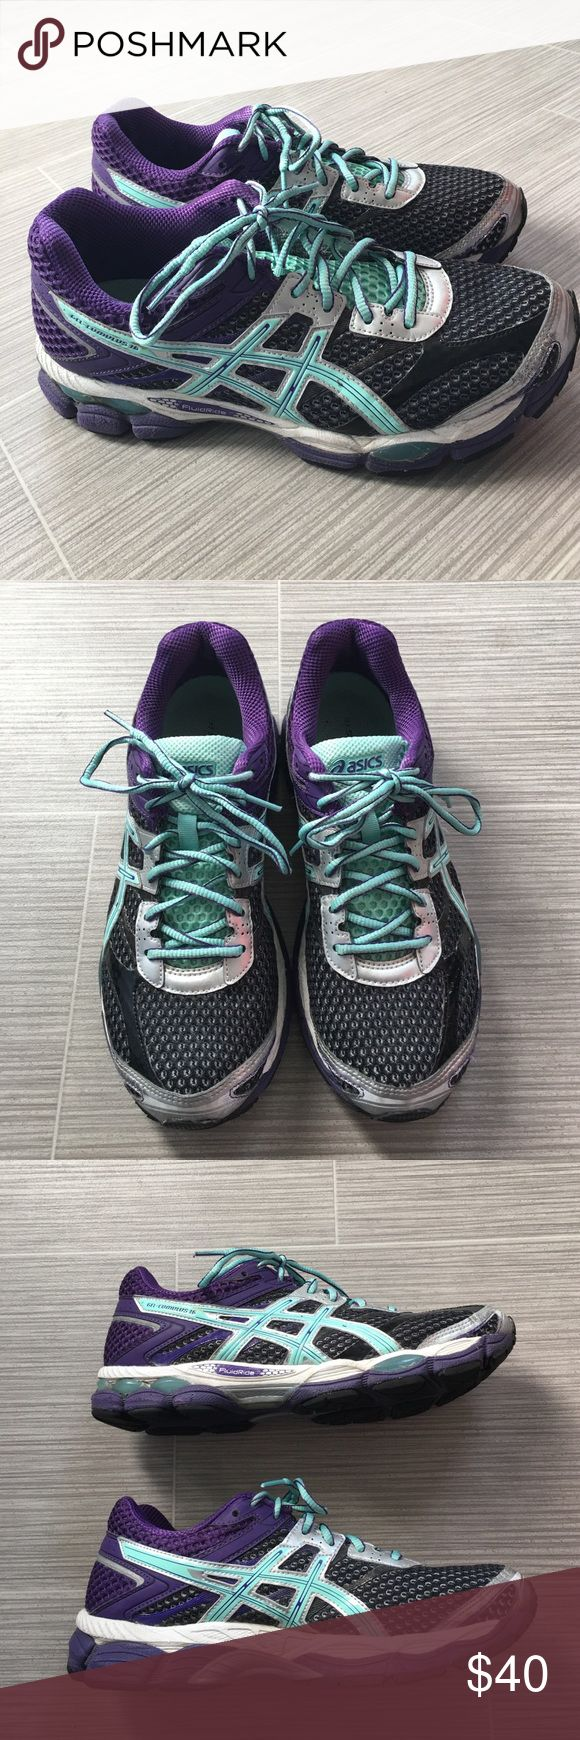 Asics Gel-cumulus 16 size 9.5 Asics Gel-cumulus 16 size 9.5. Worn a handful of times. Purple and light teal sneakers with charcoal color. Asics Shoes Athletic Shoes